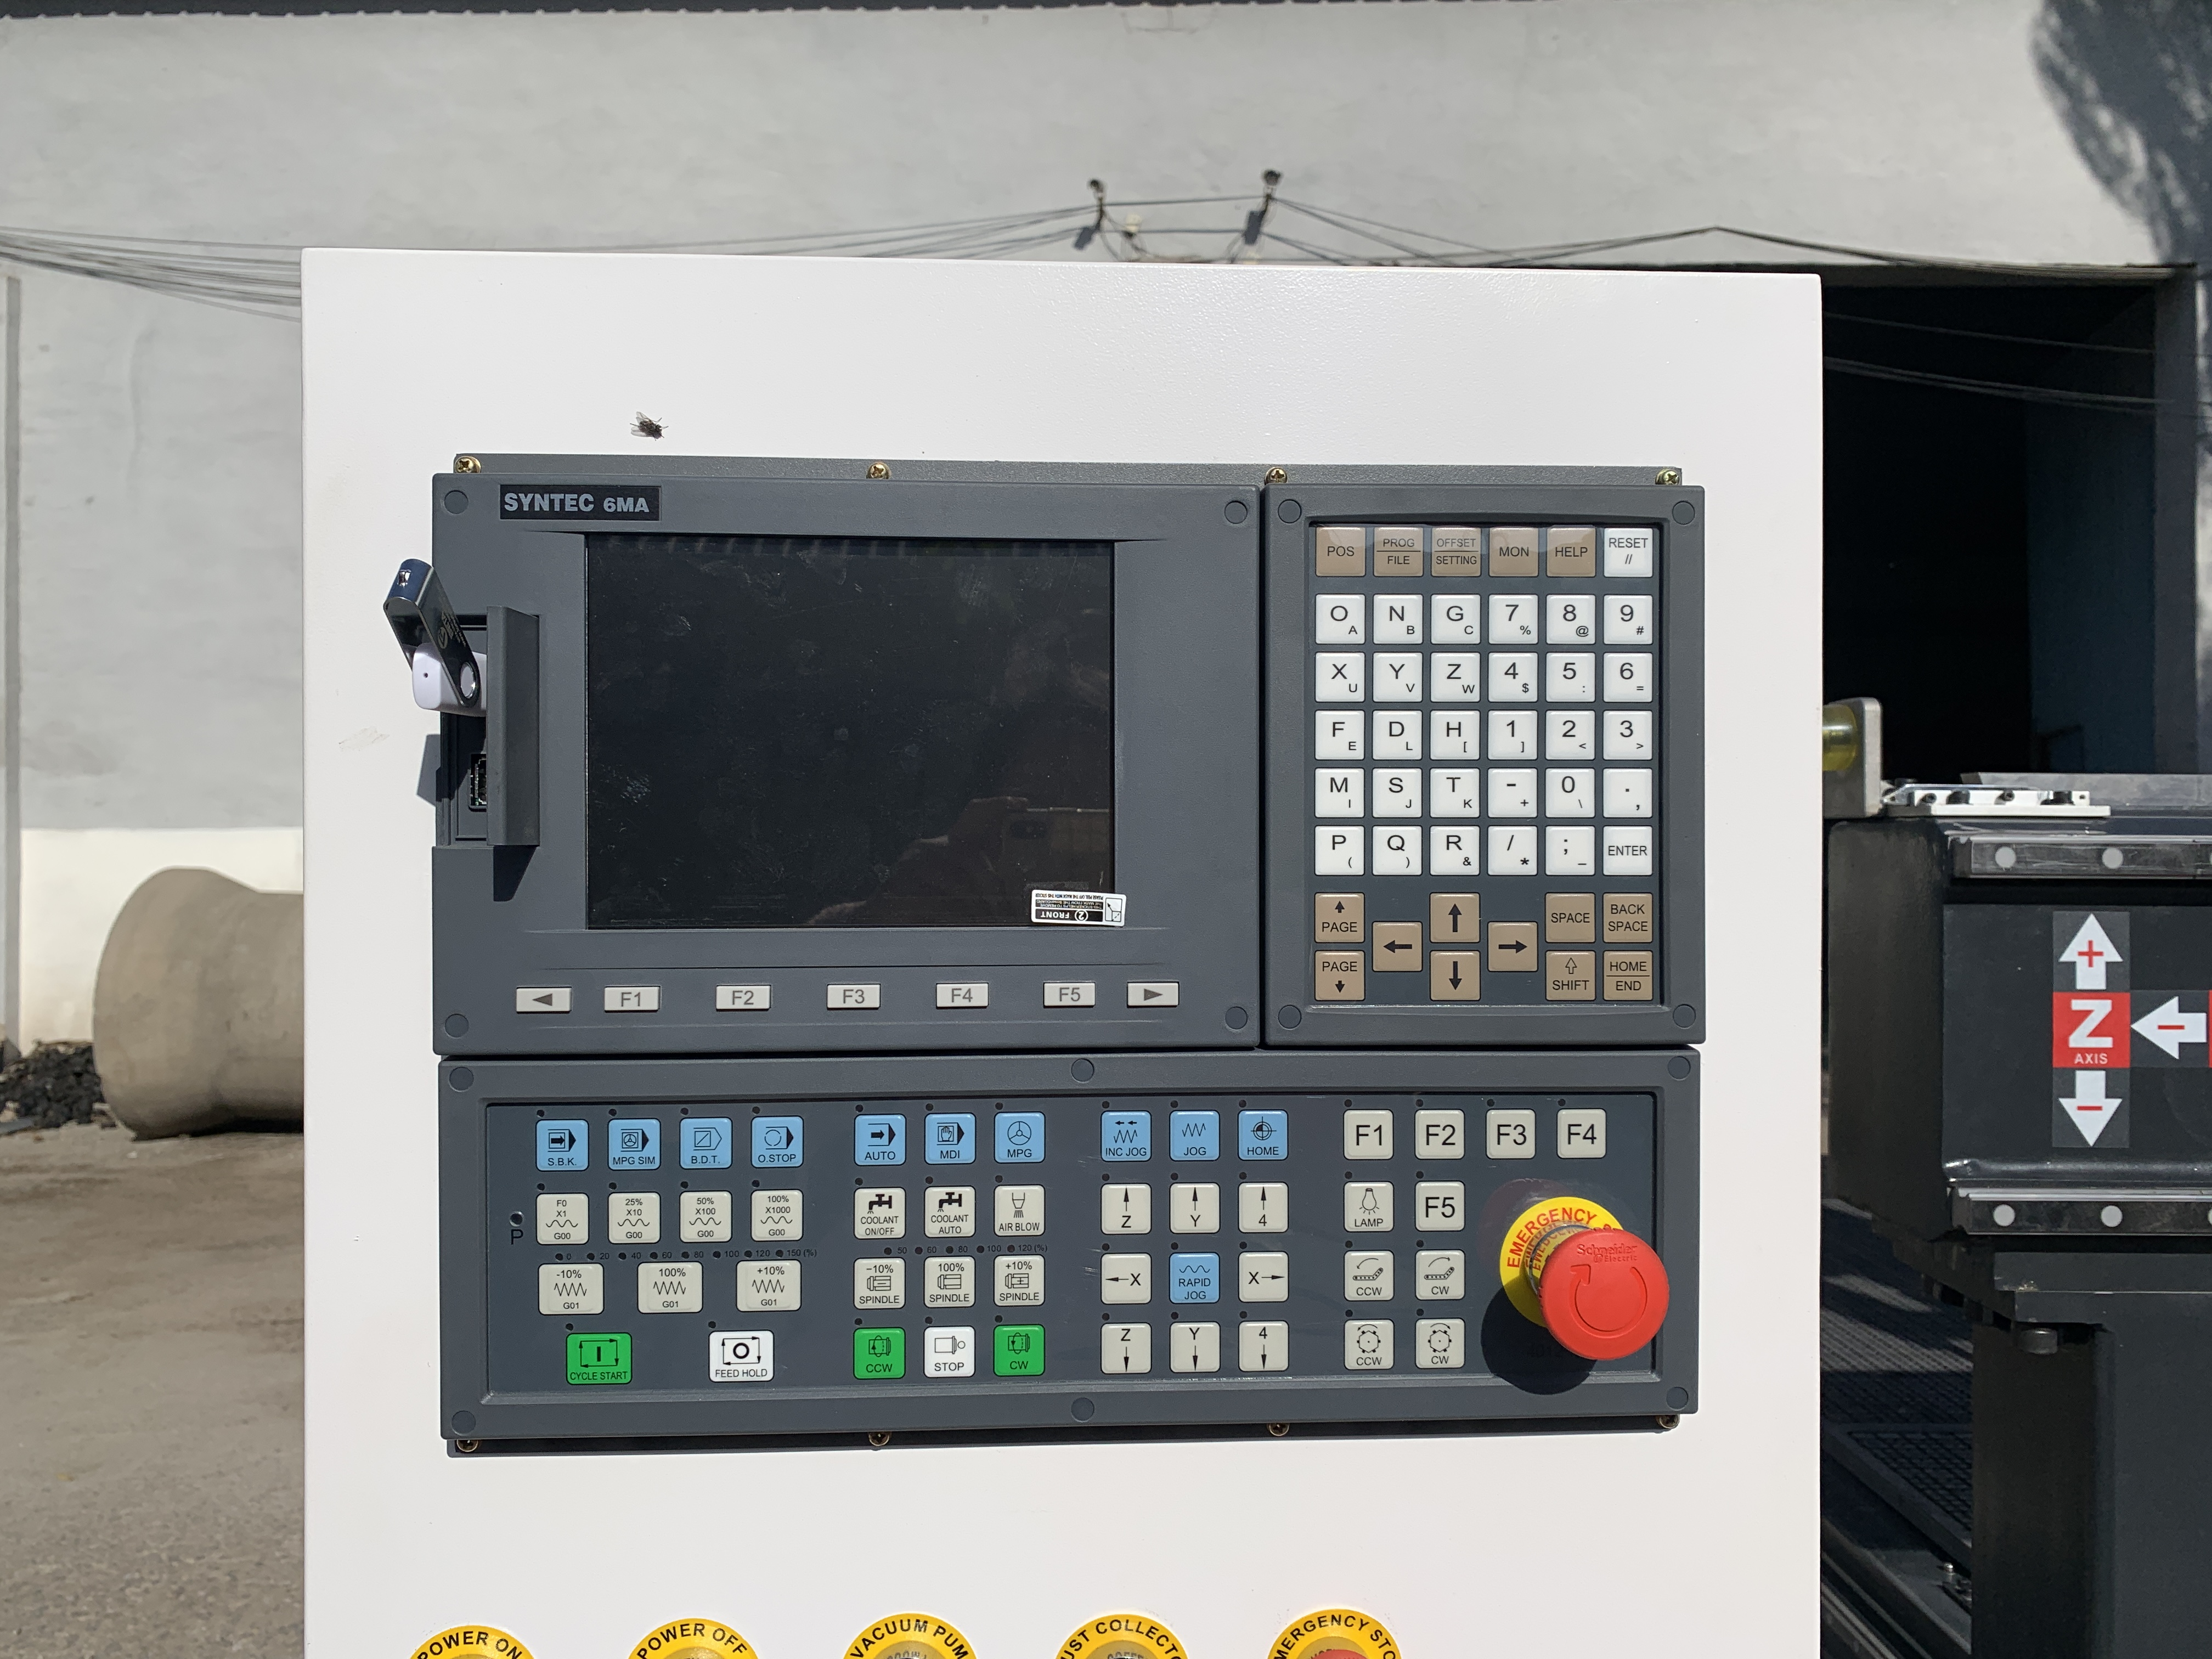 Syntec 6MA for cnc router